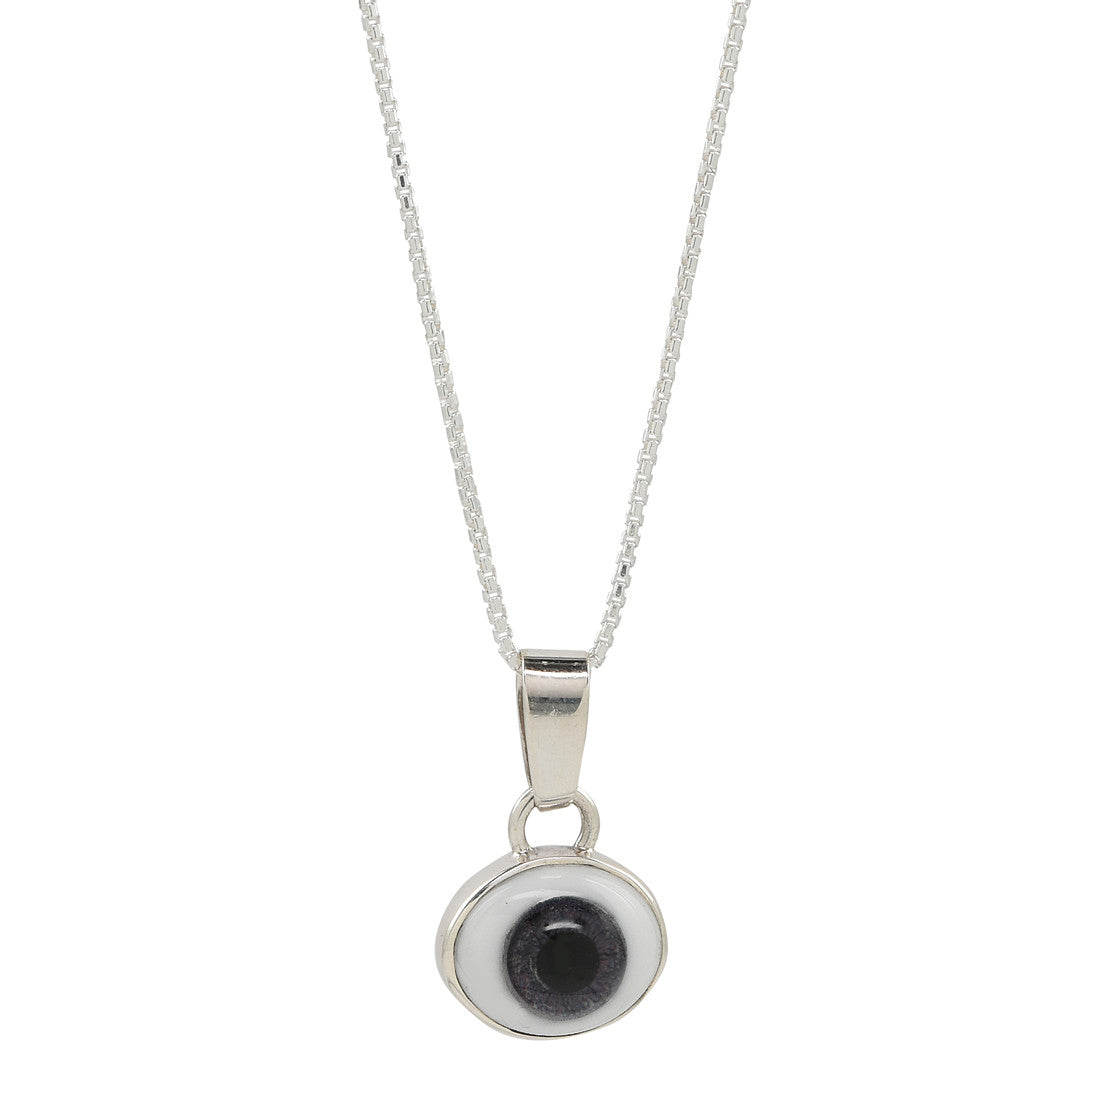 grey eye against evil necklace in sterling silver .925